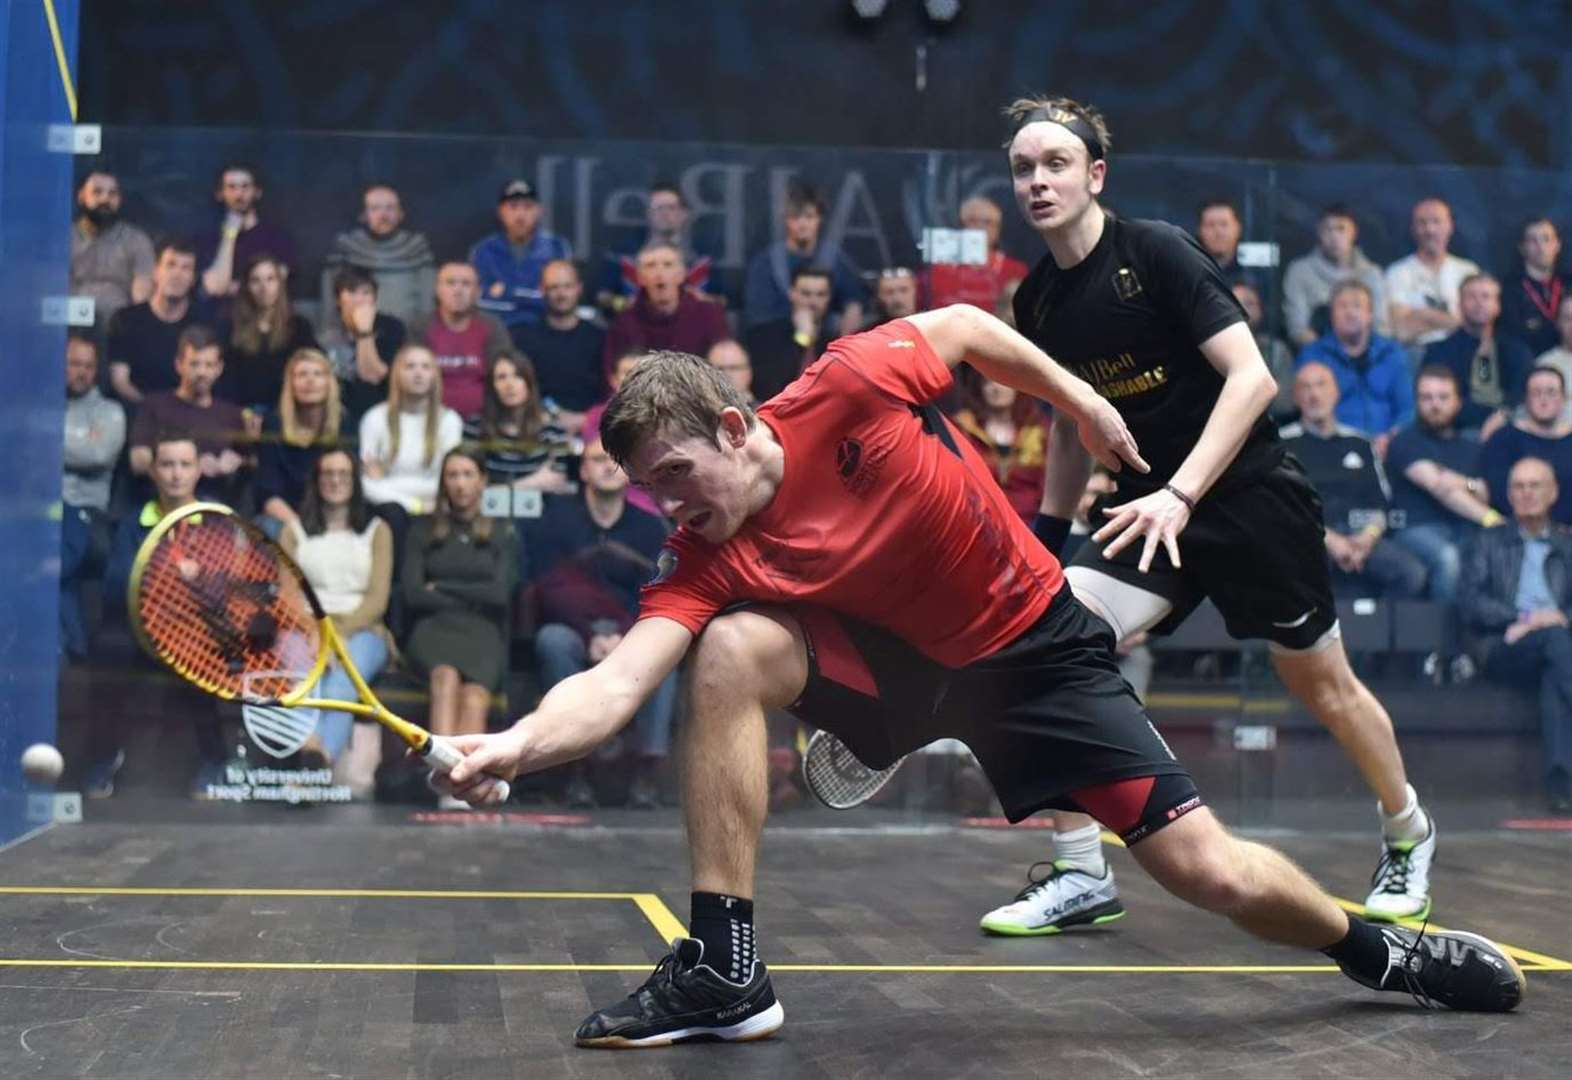 North Kessock squash star looks to become best of British.